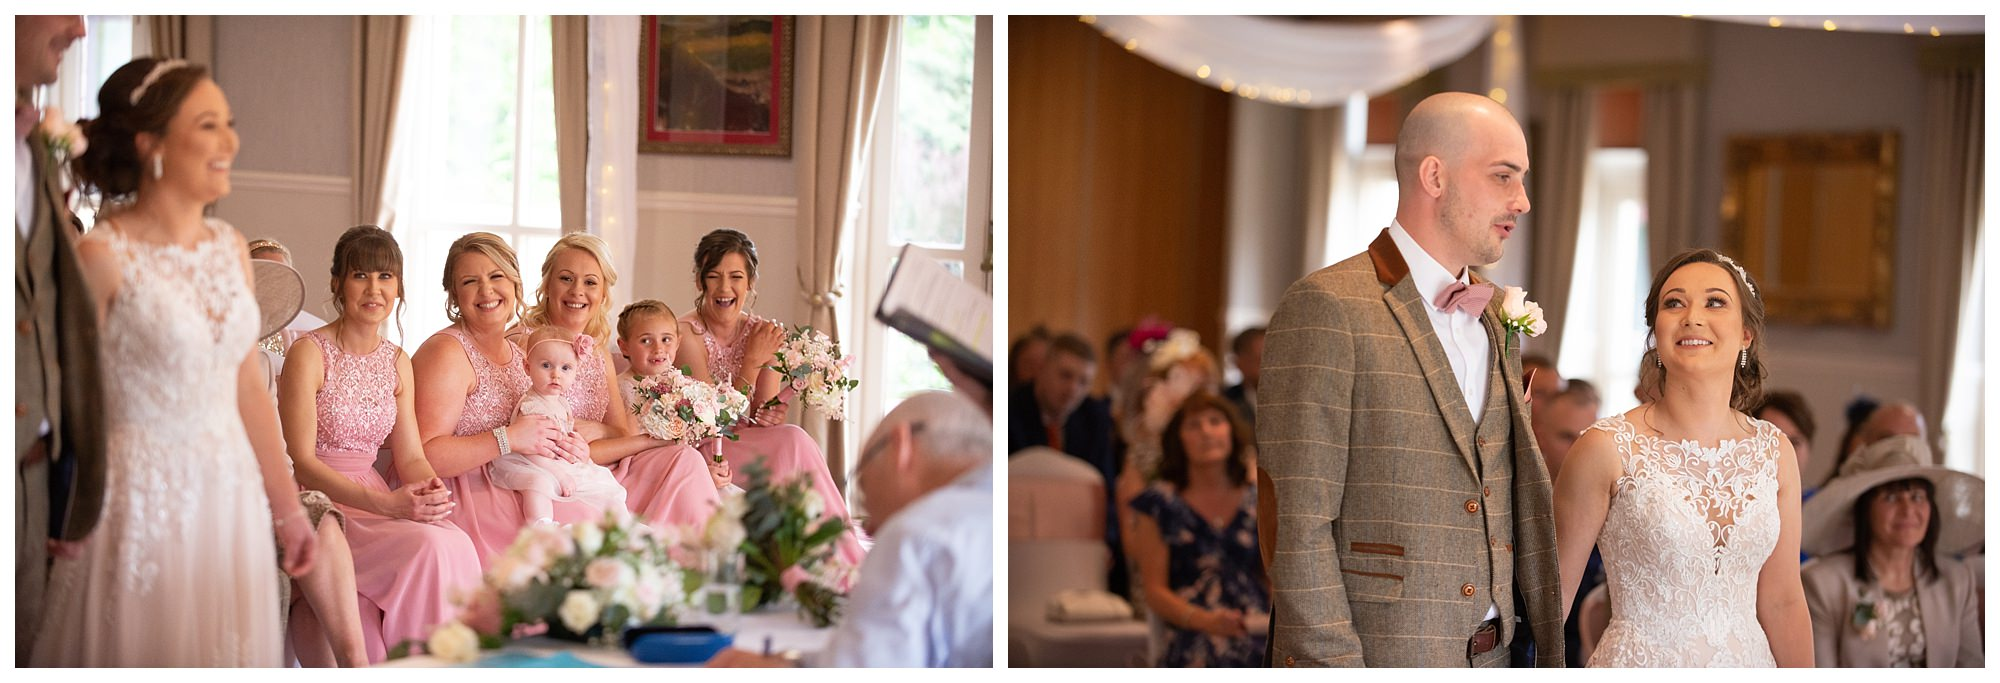 Bagden-Hall-Wedding-Photography_0021